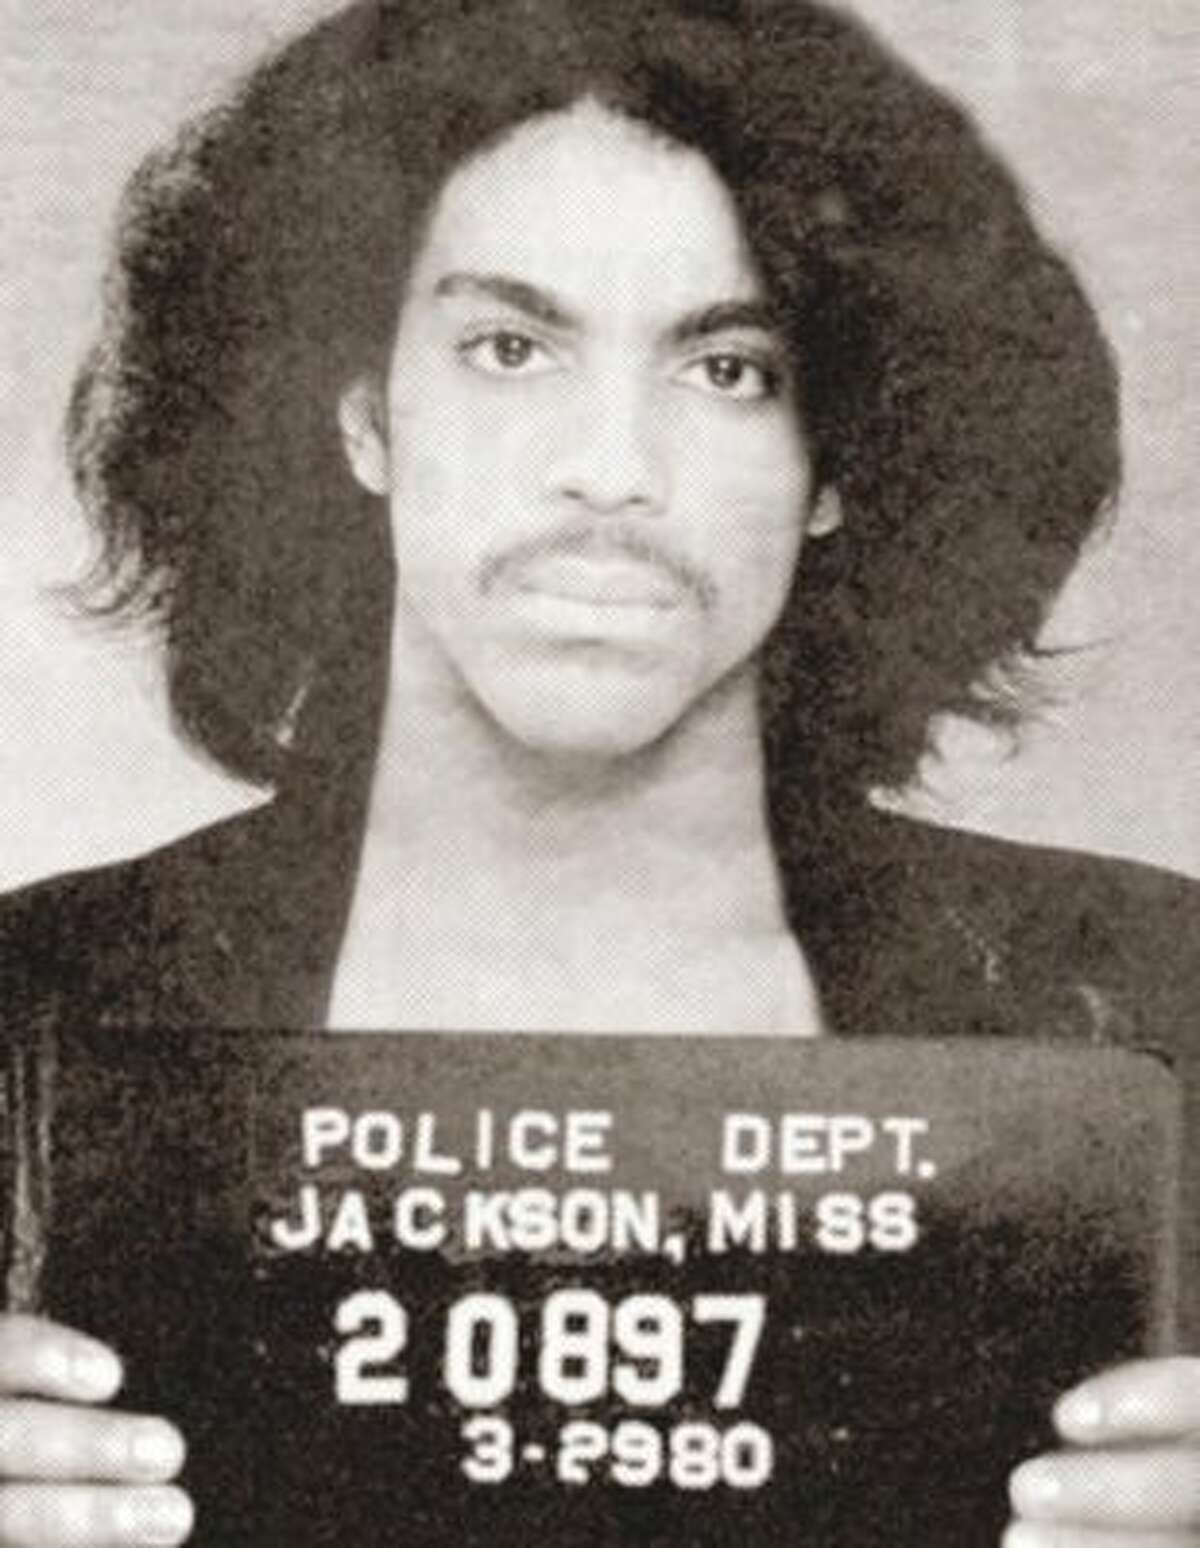 Prince (1980): The Great Purple One was arrested in Mississippi for